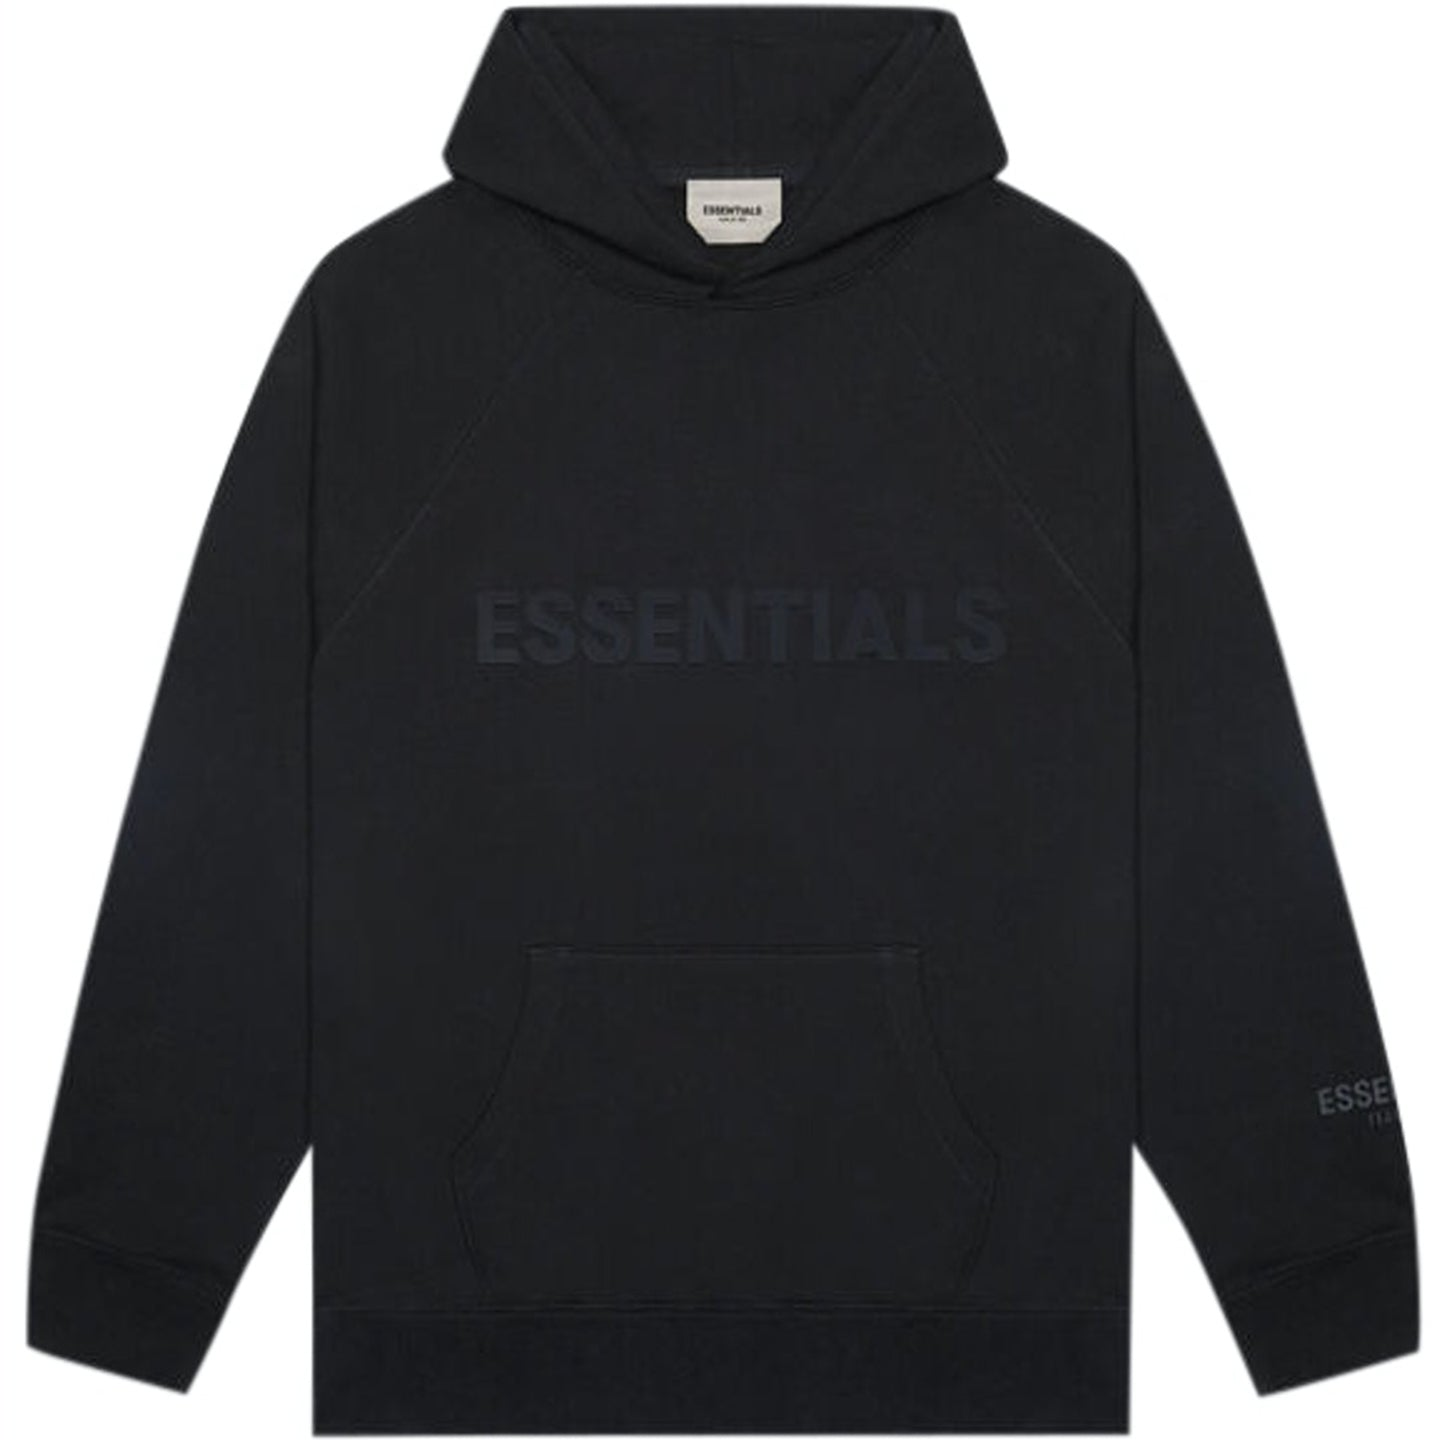 FEAR OF GOD ESSENTIALS BLACK LOGO HOODIE